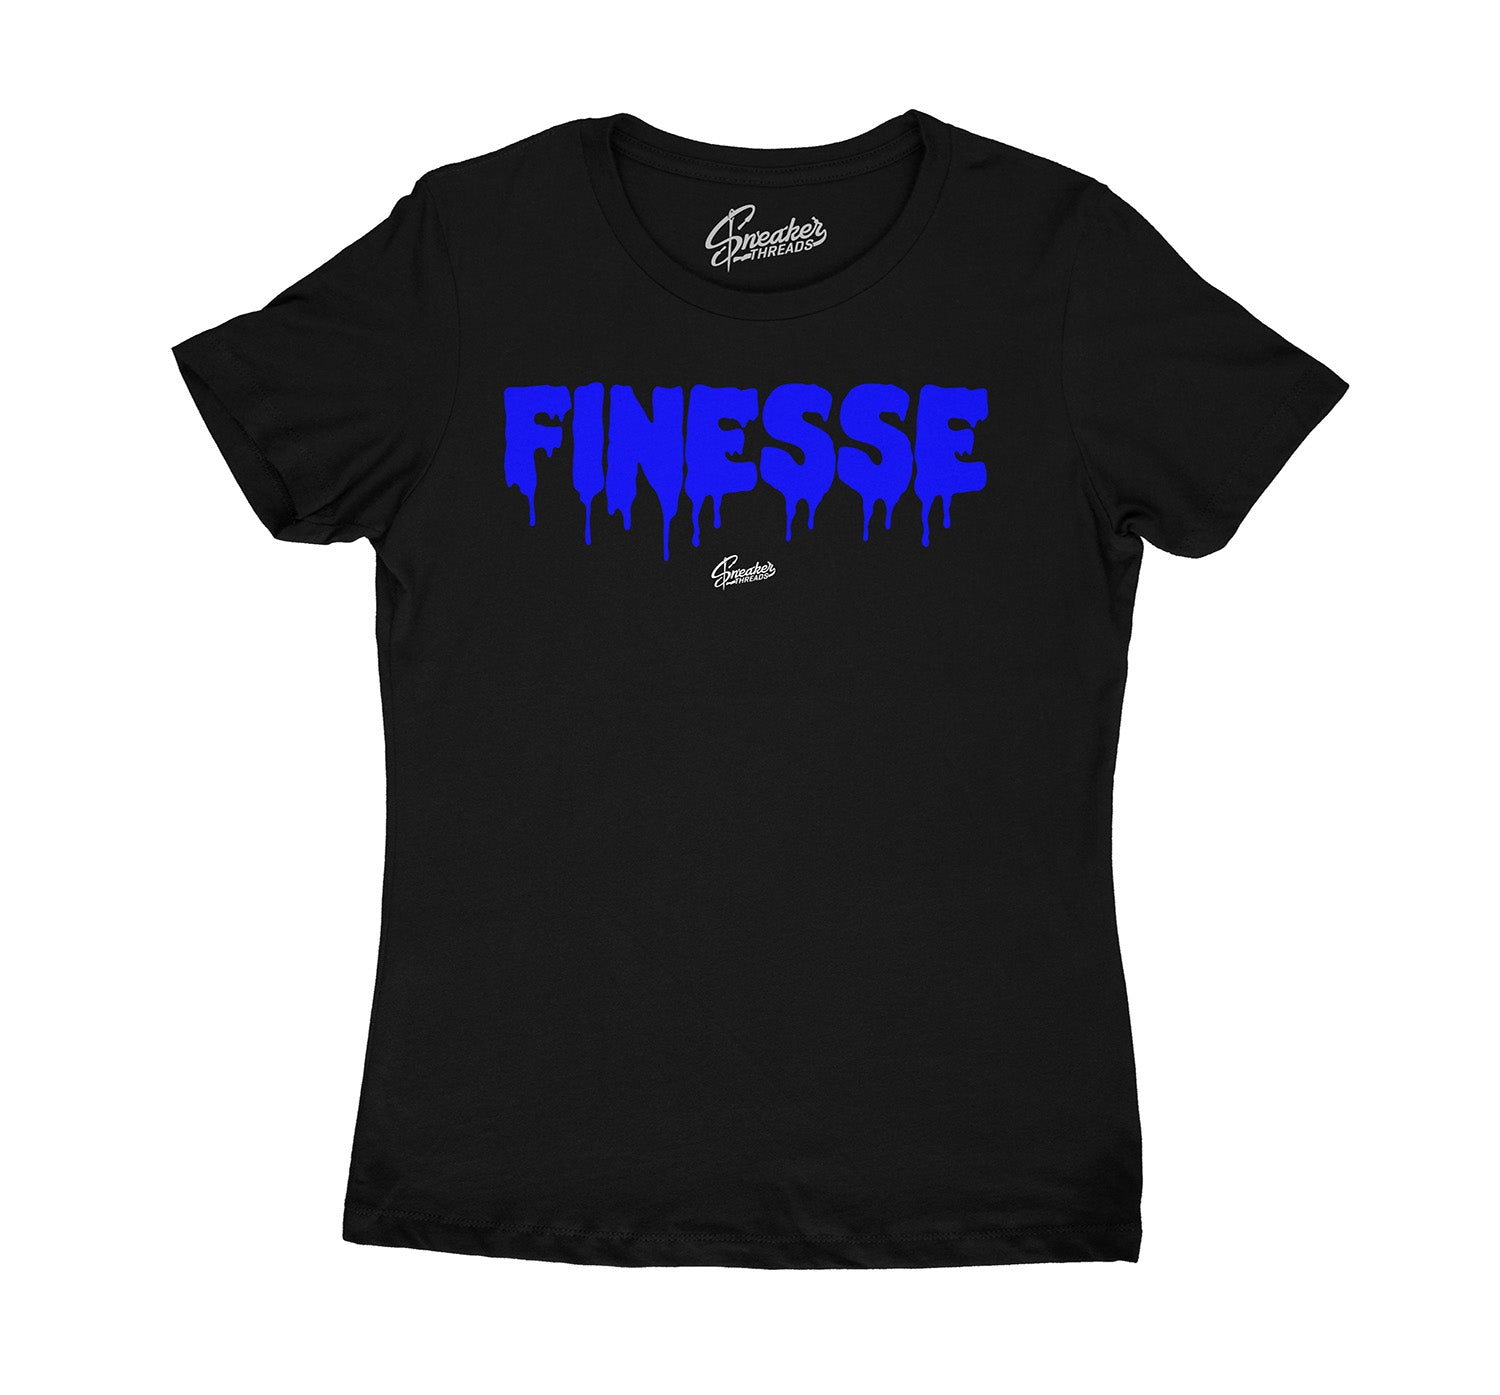 Jordan 12 Game Royals Finesse shirt to match release